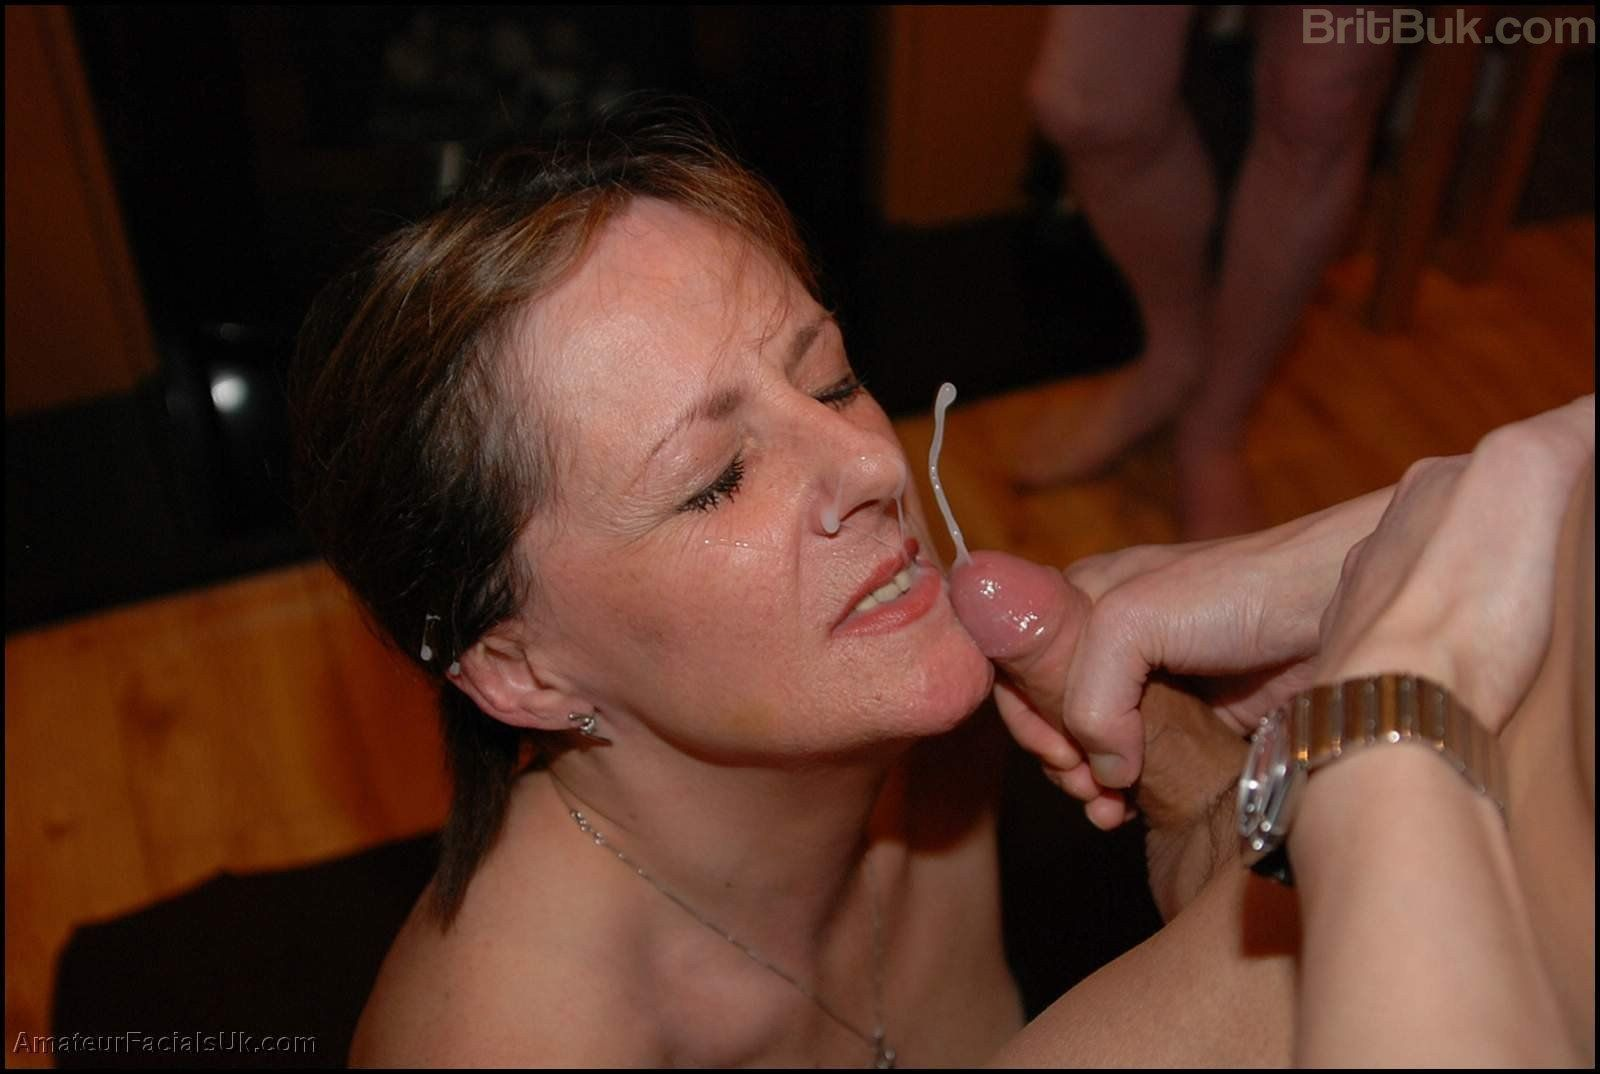 The perfect blow job wife